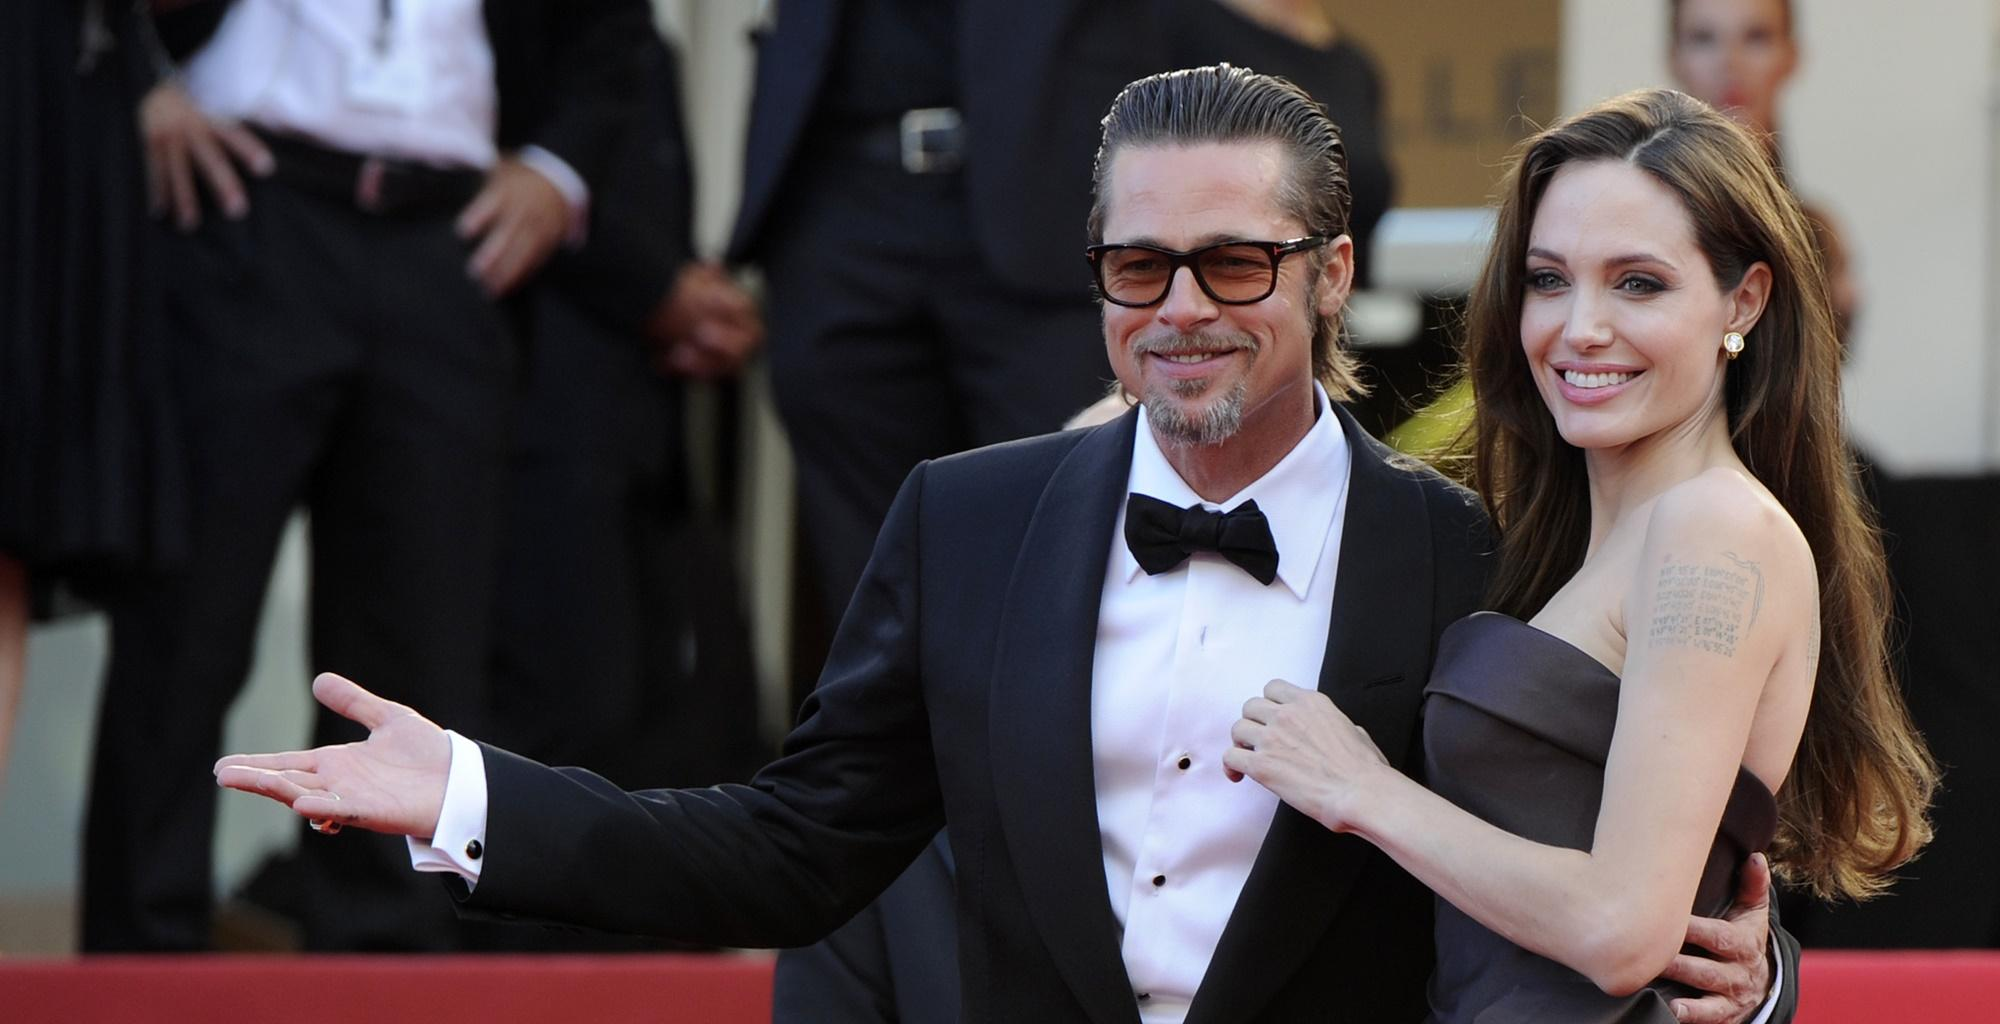 Tense Angelina Jolie And Brad Pitt Meeting Caught In Viral Picture -- Fans Are Still Hoping For An Amicable Divorce Agreement